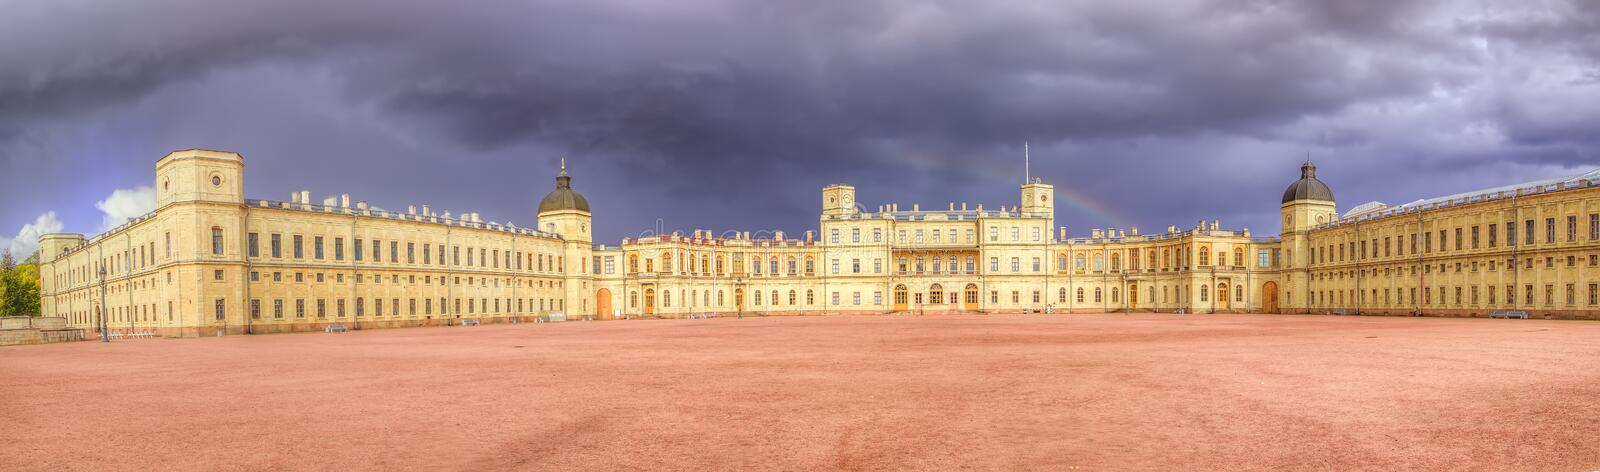 Gatchina Palace panorama royalty free stock photos